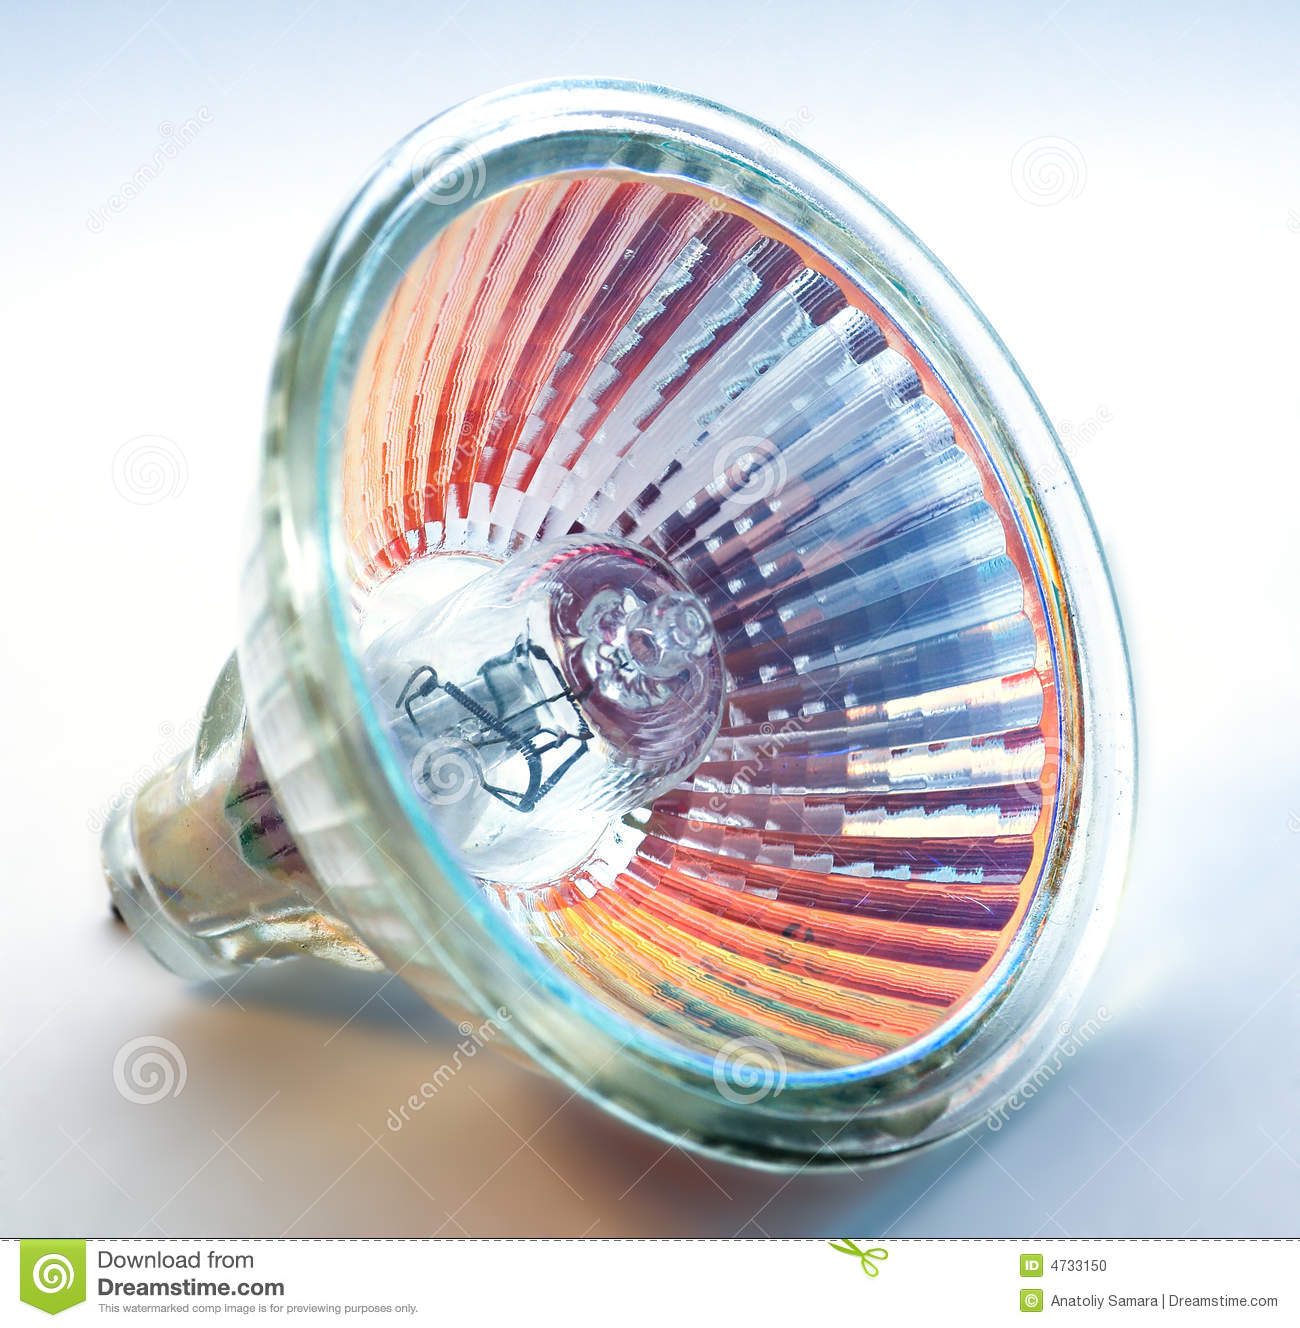 Blue Halogen Light Bulbs